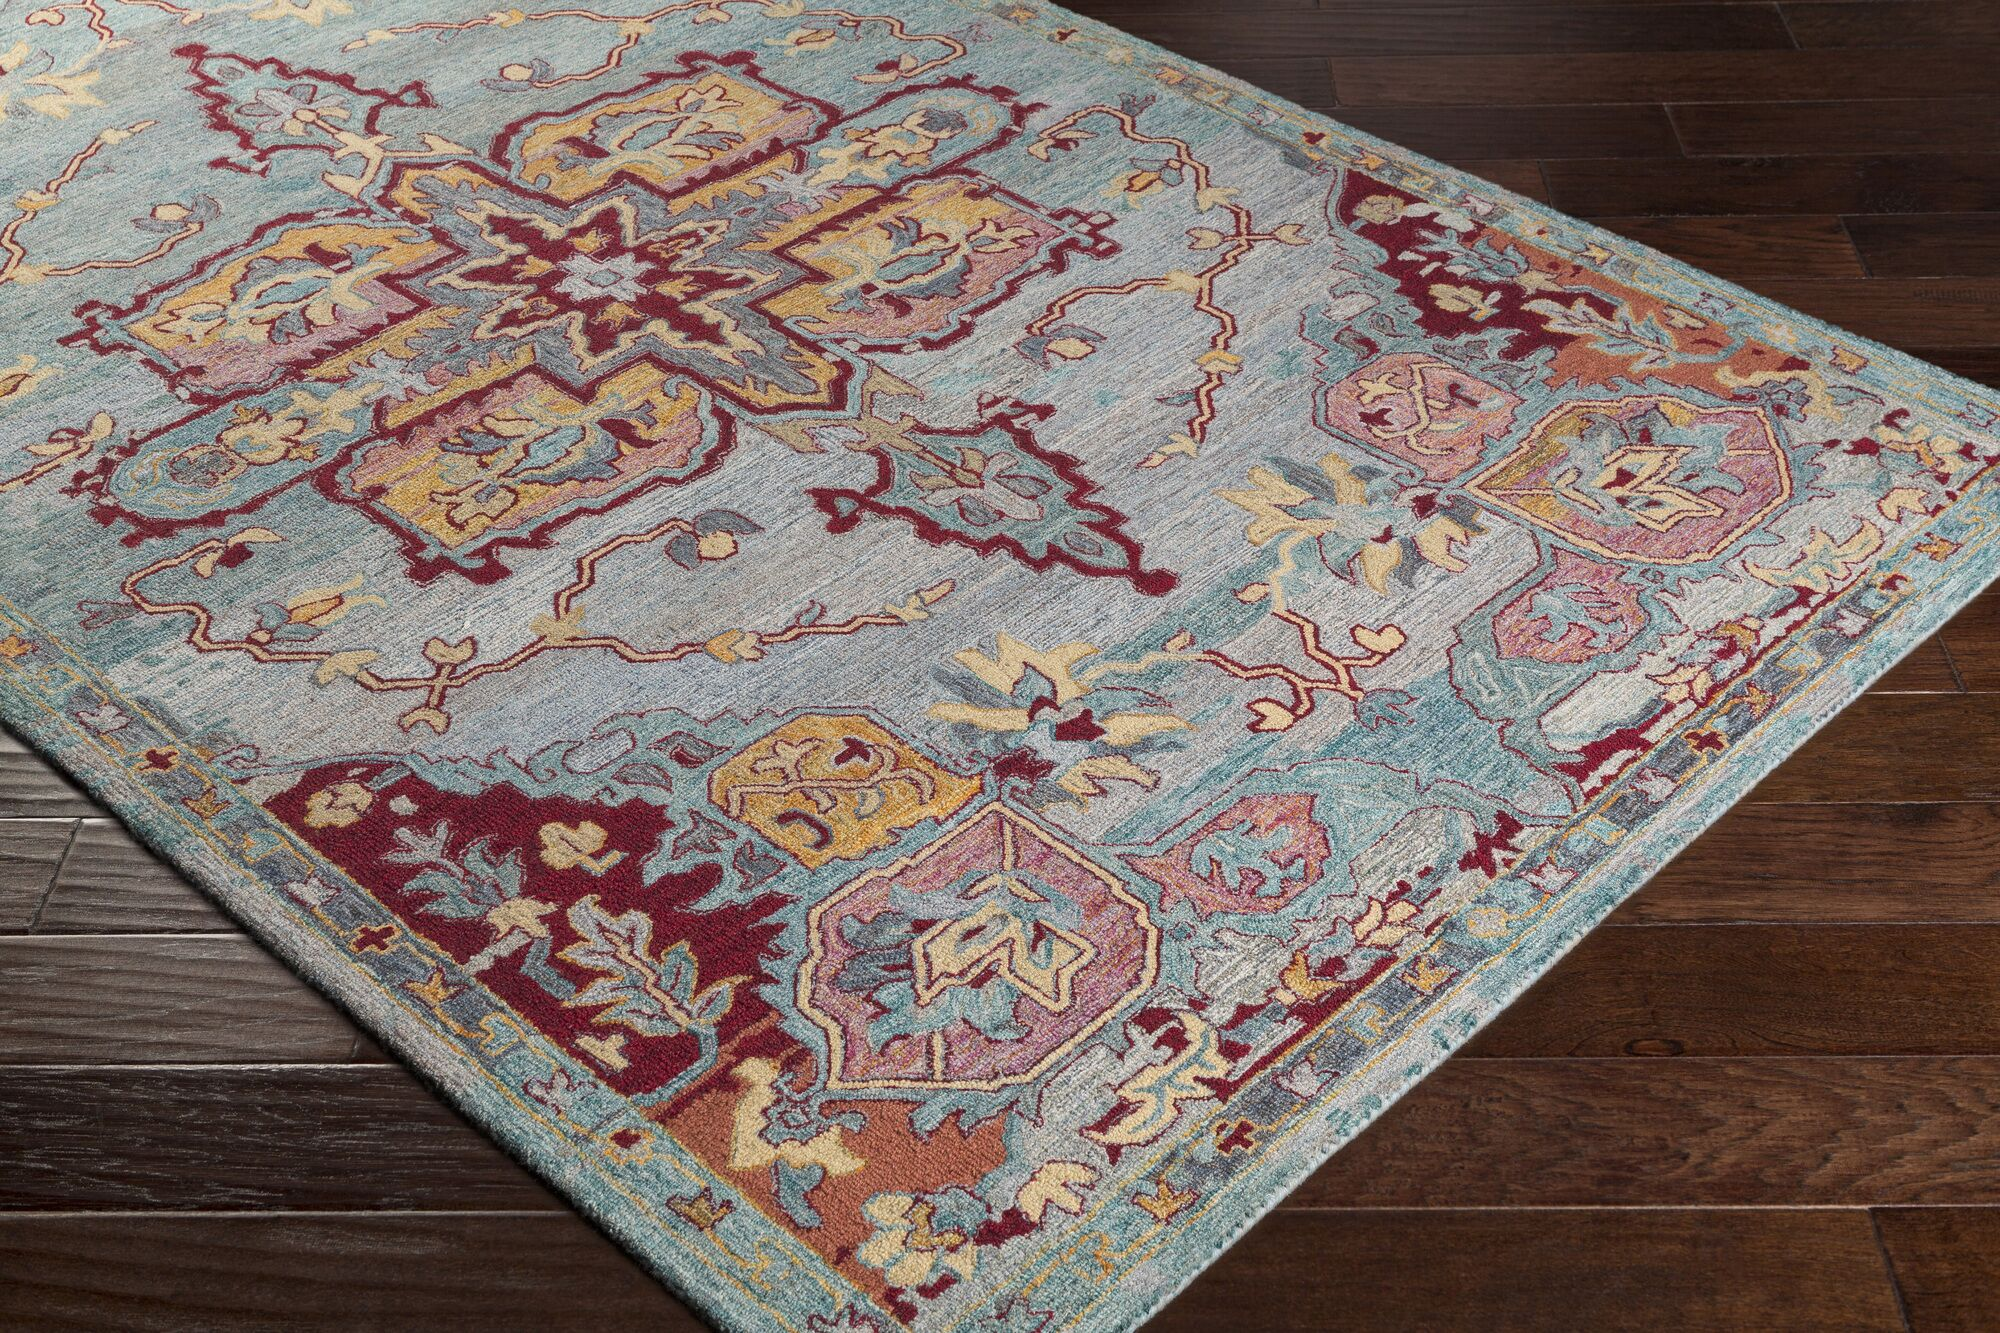 Kendall Green Floral Hand Hooked Wool Emerald/Cream Area Rug Rug Size: Rectangle 8' x 10'